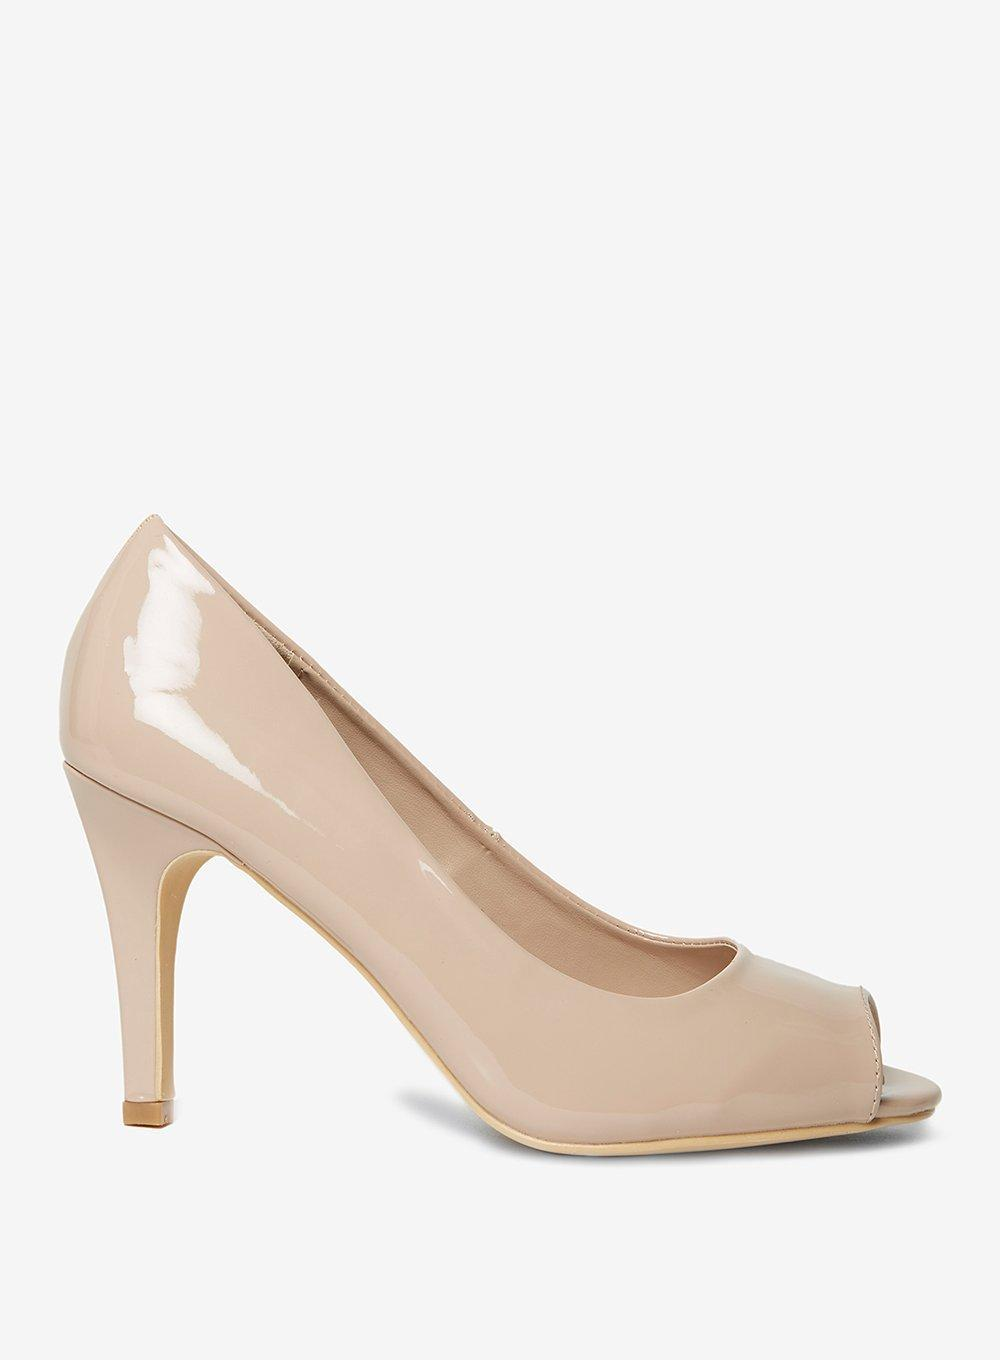 5339c3db37 Lyst - Dorothy Perkins Wide Fit Nude 'clover' Court Shoes in White